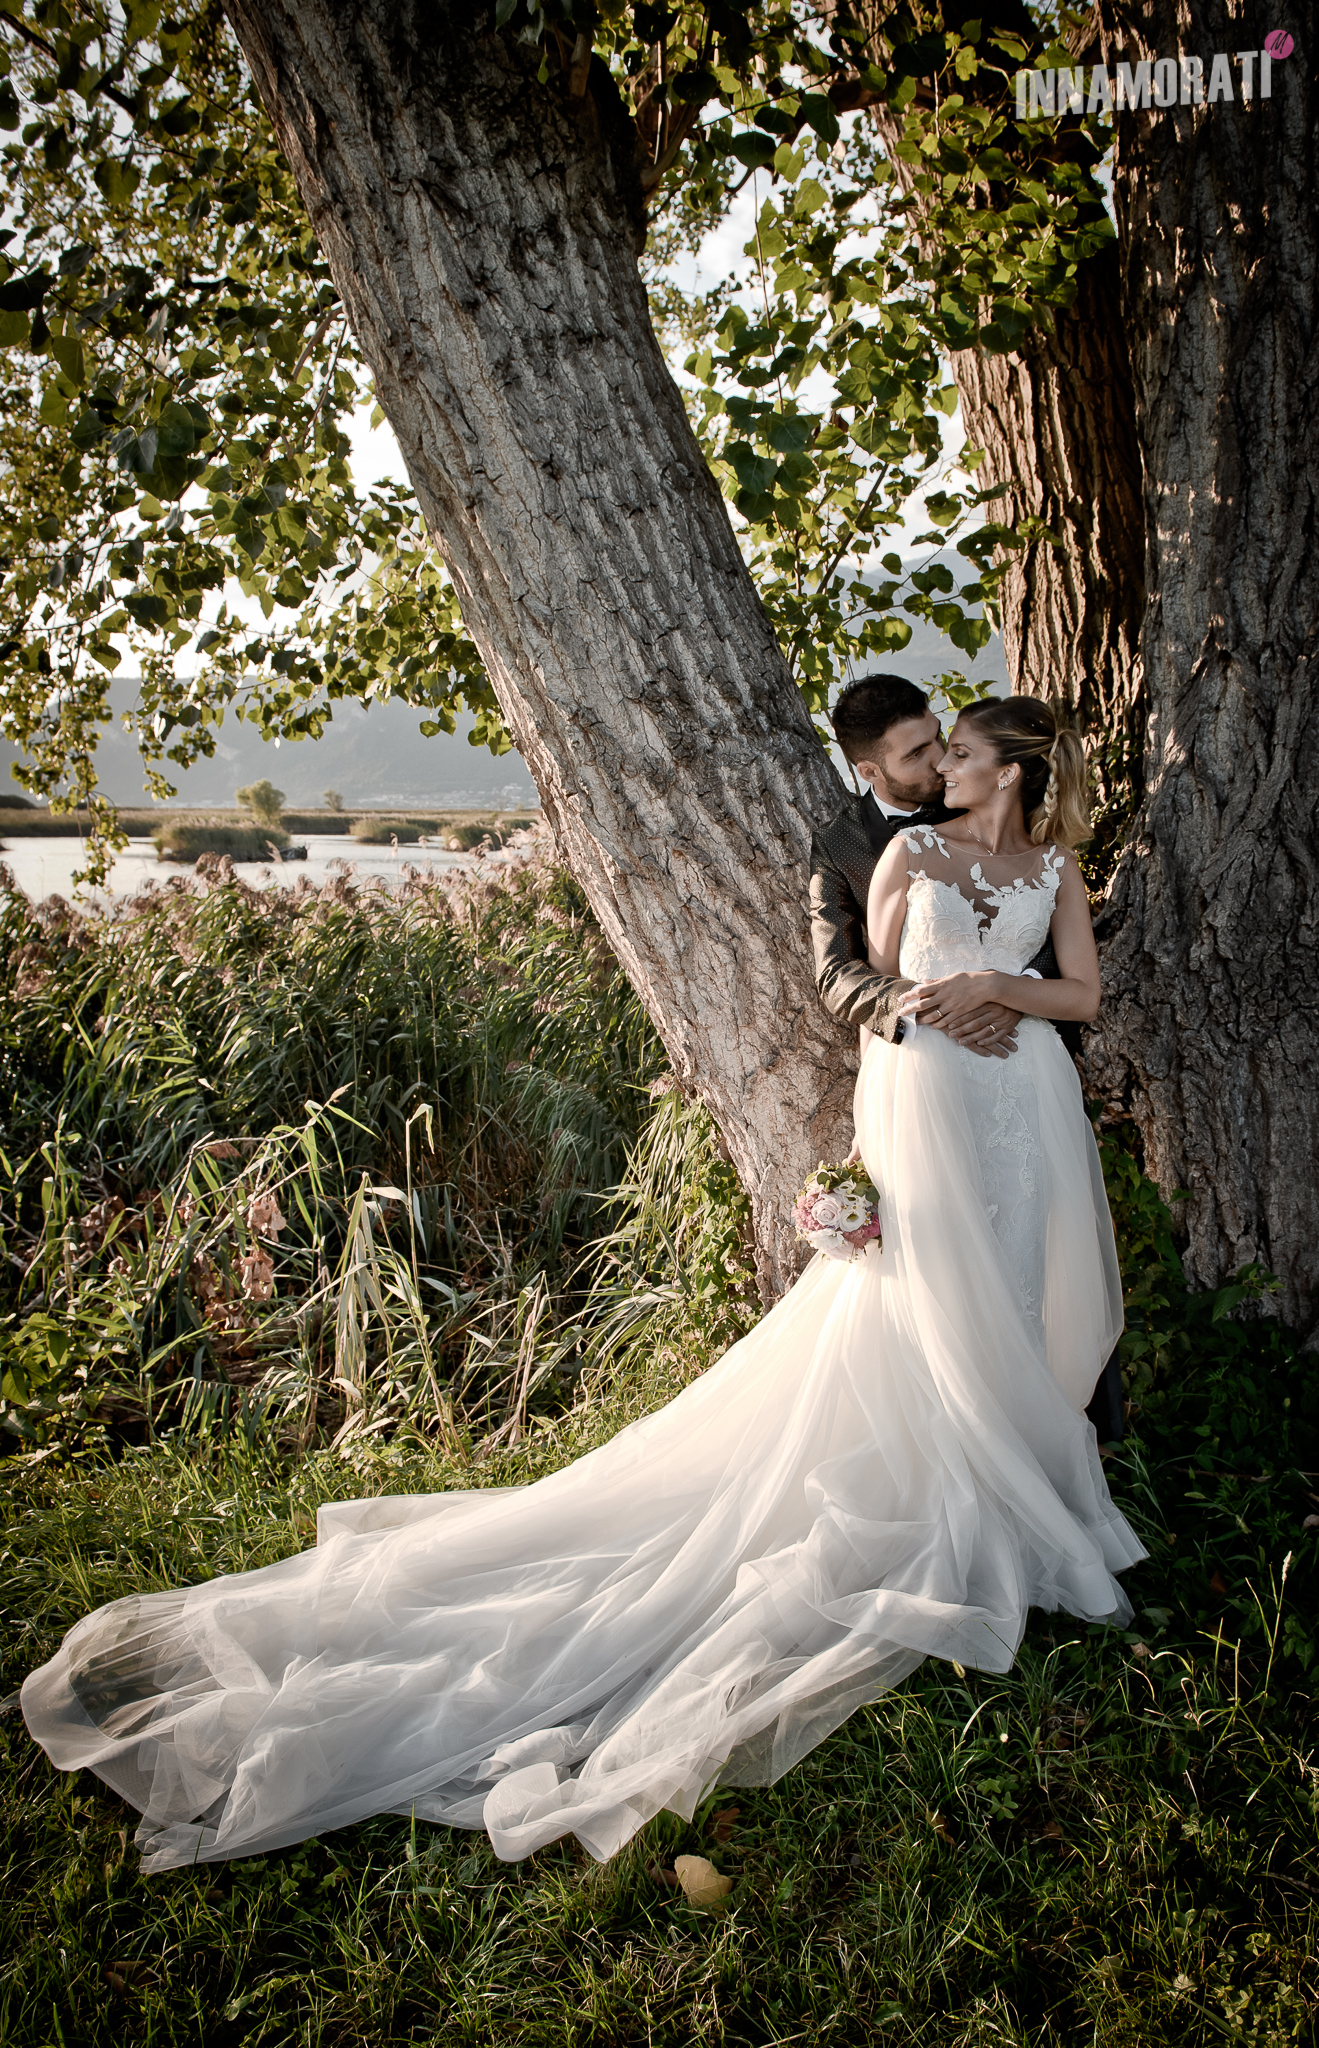 Innamorati Wedding Studio-2.jpg